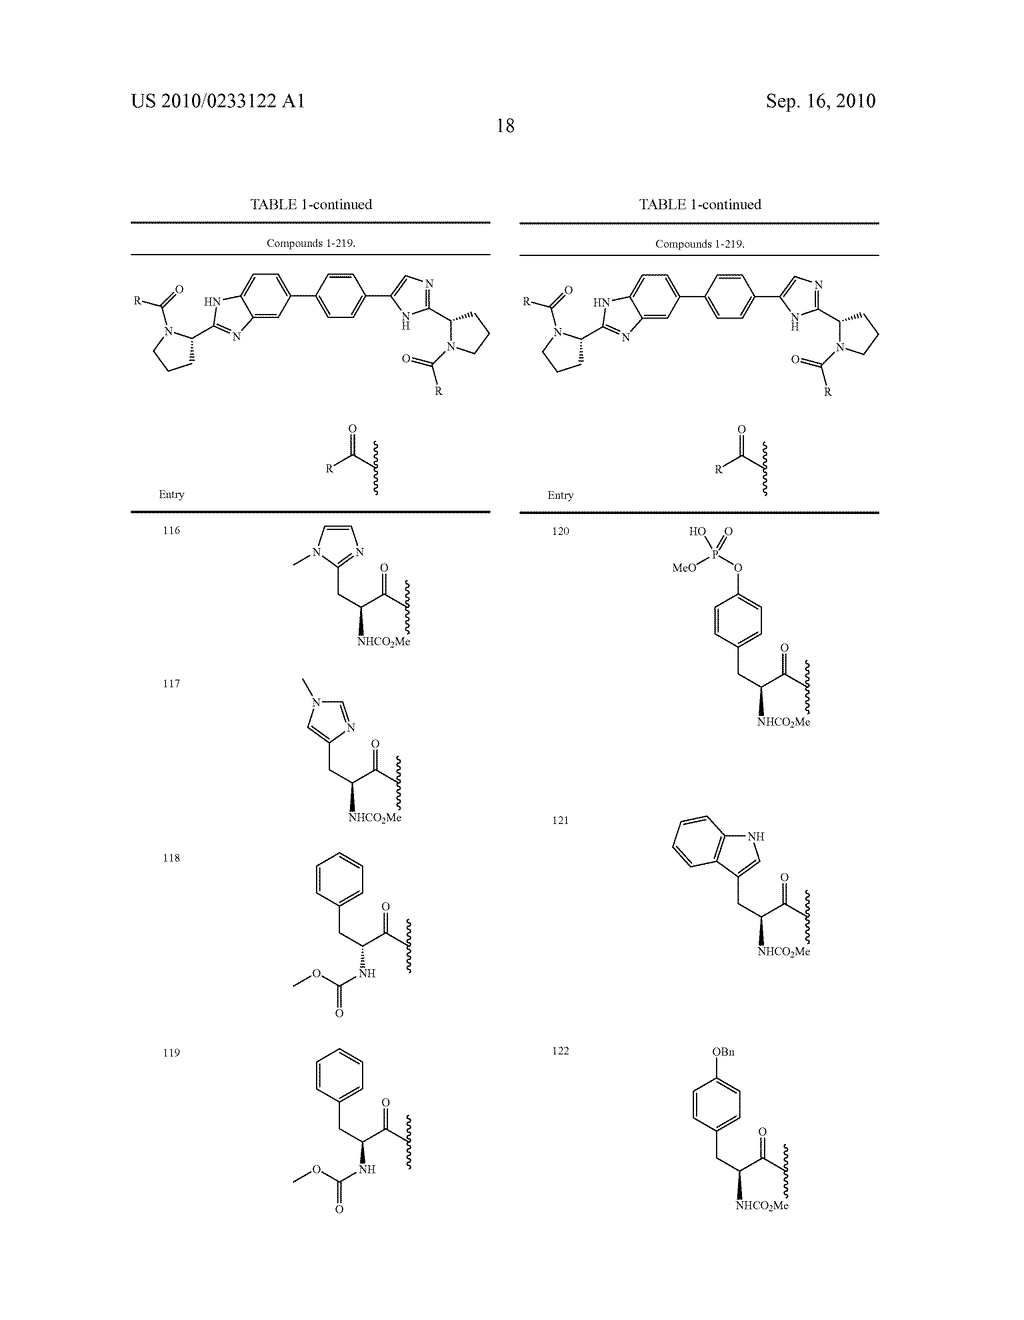 NOVEL BENZIMIDAZOLE DERIVATIVES - diagram, schematic, and image 19